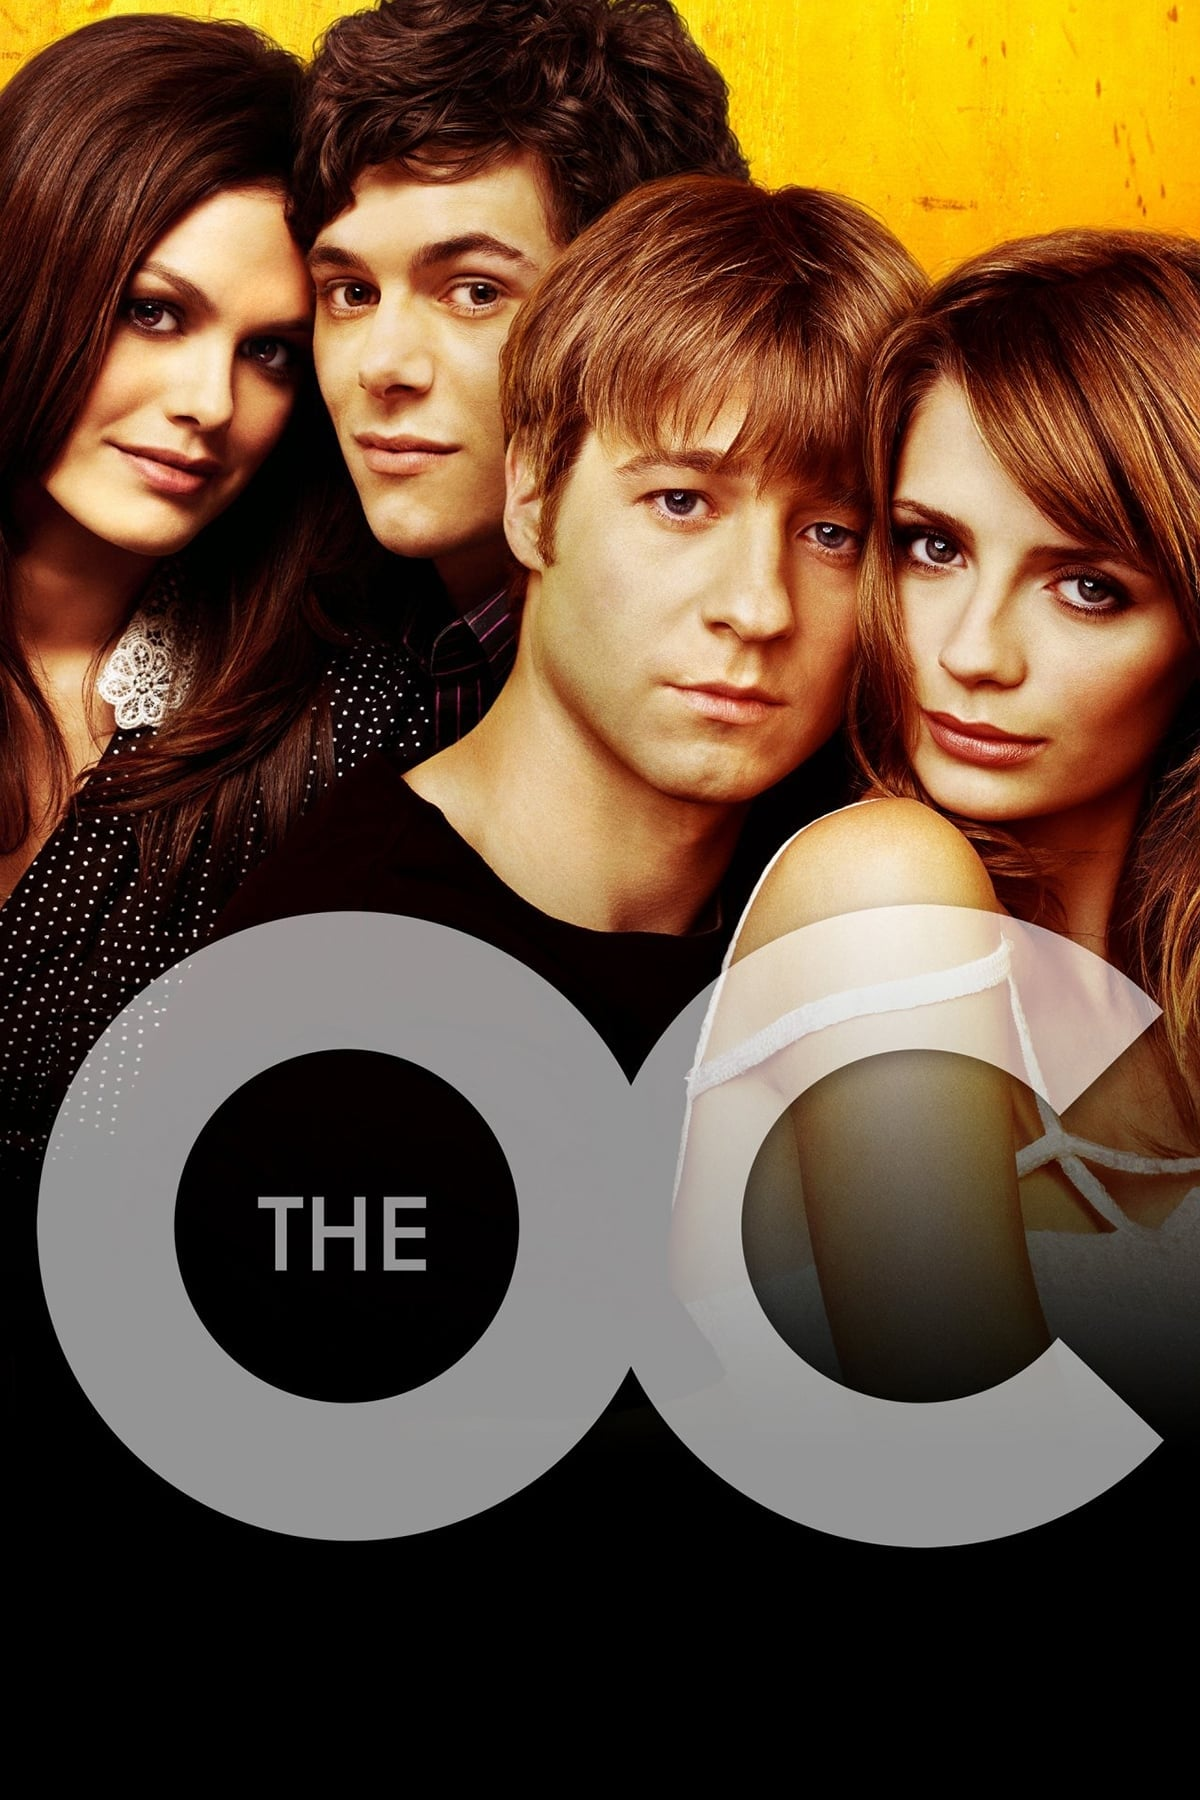 The O.C. TV Shows About Teenage Romance